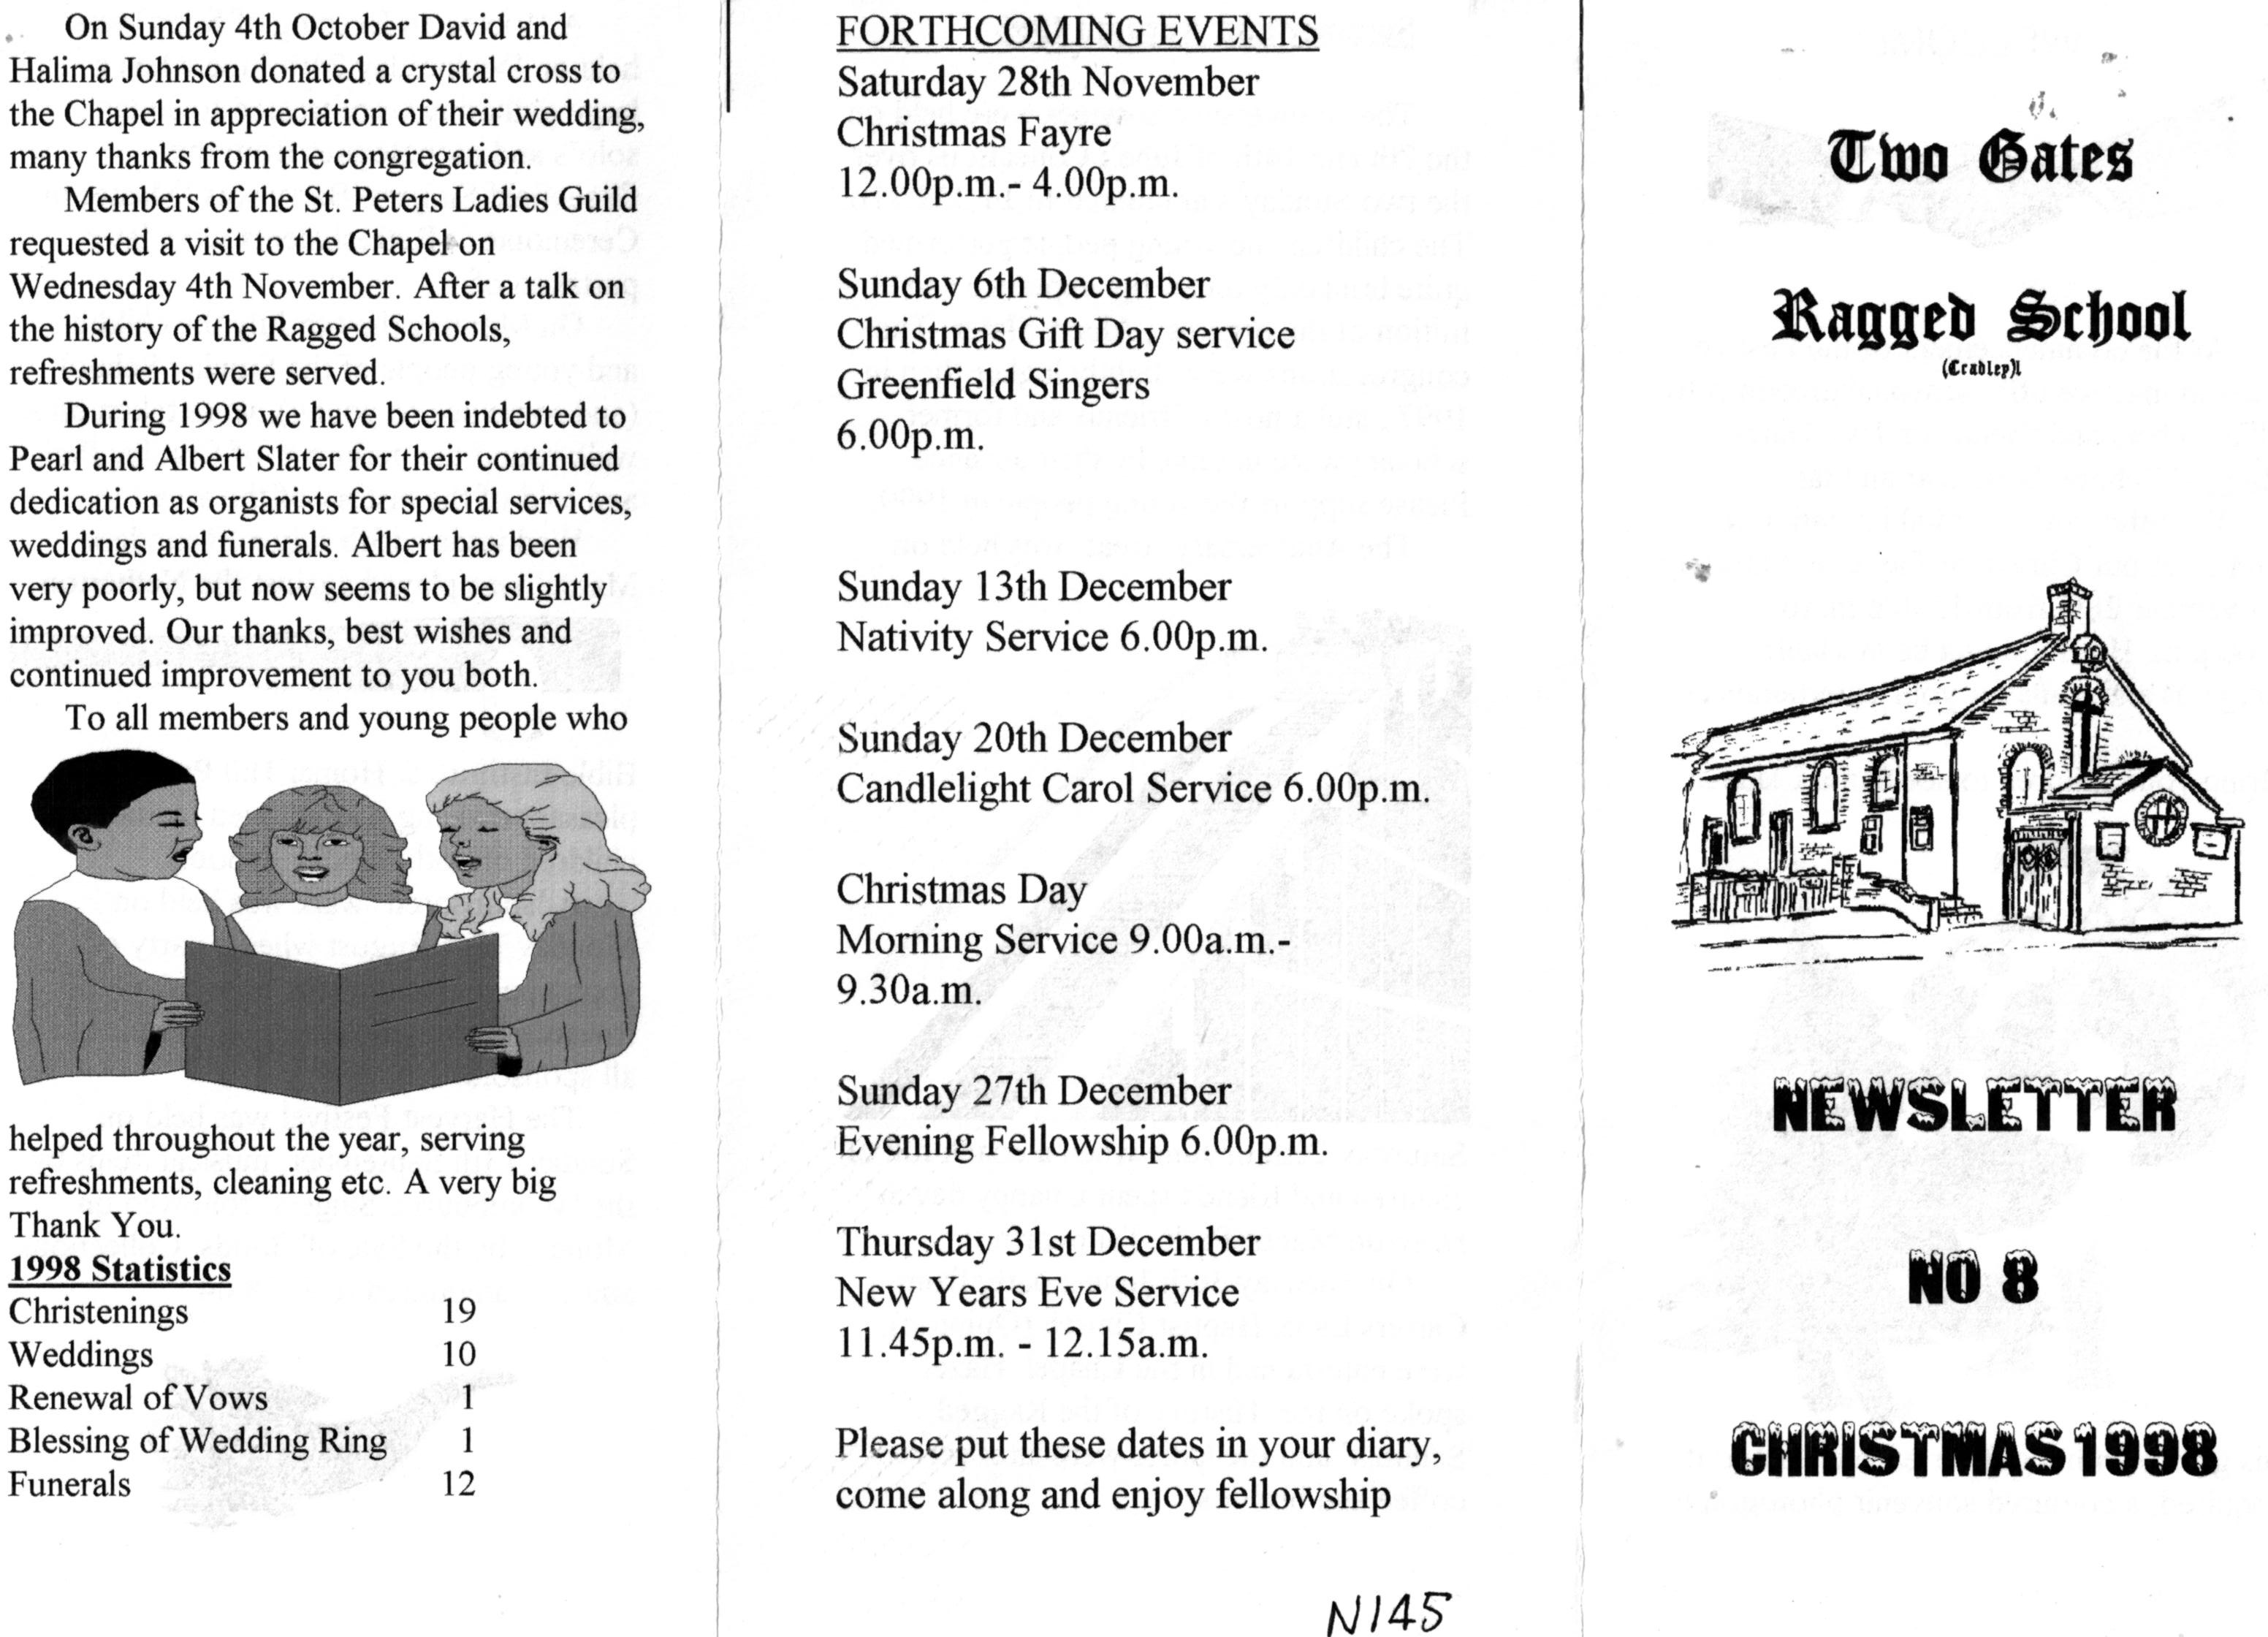 N144a_Newsletter_8_[Xmas-1998]